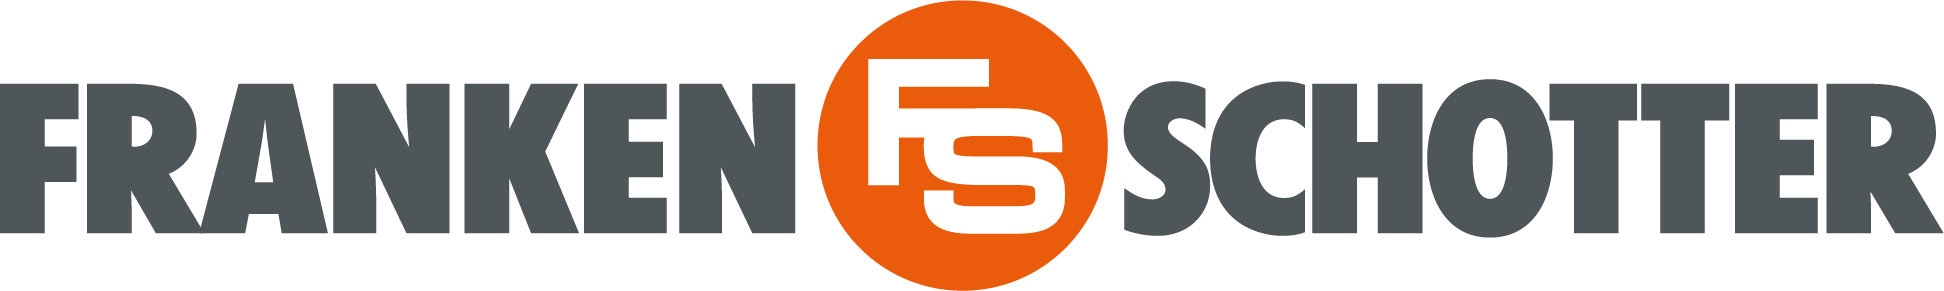 Logo_Franken-Schotter-grau-orange